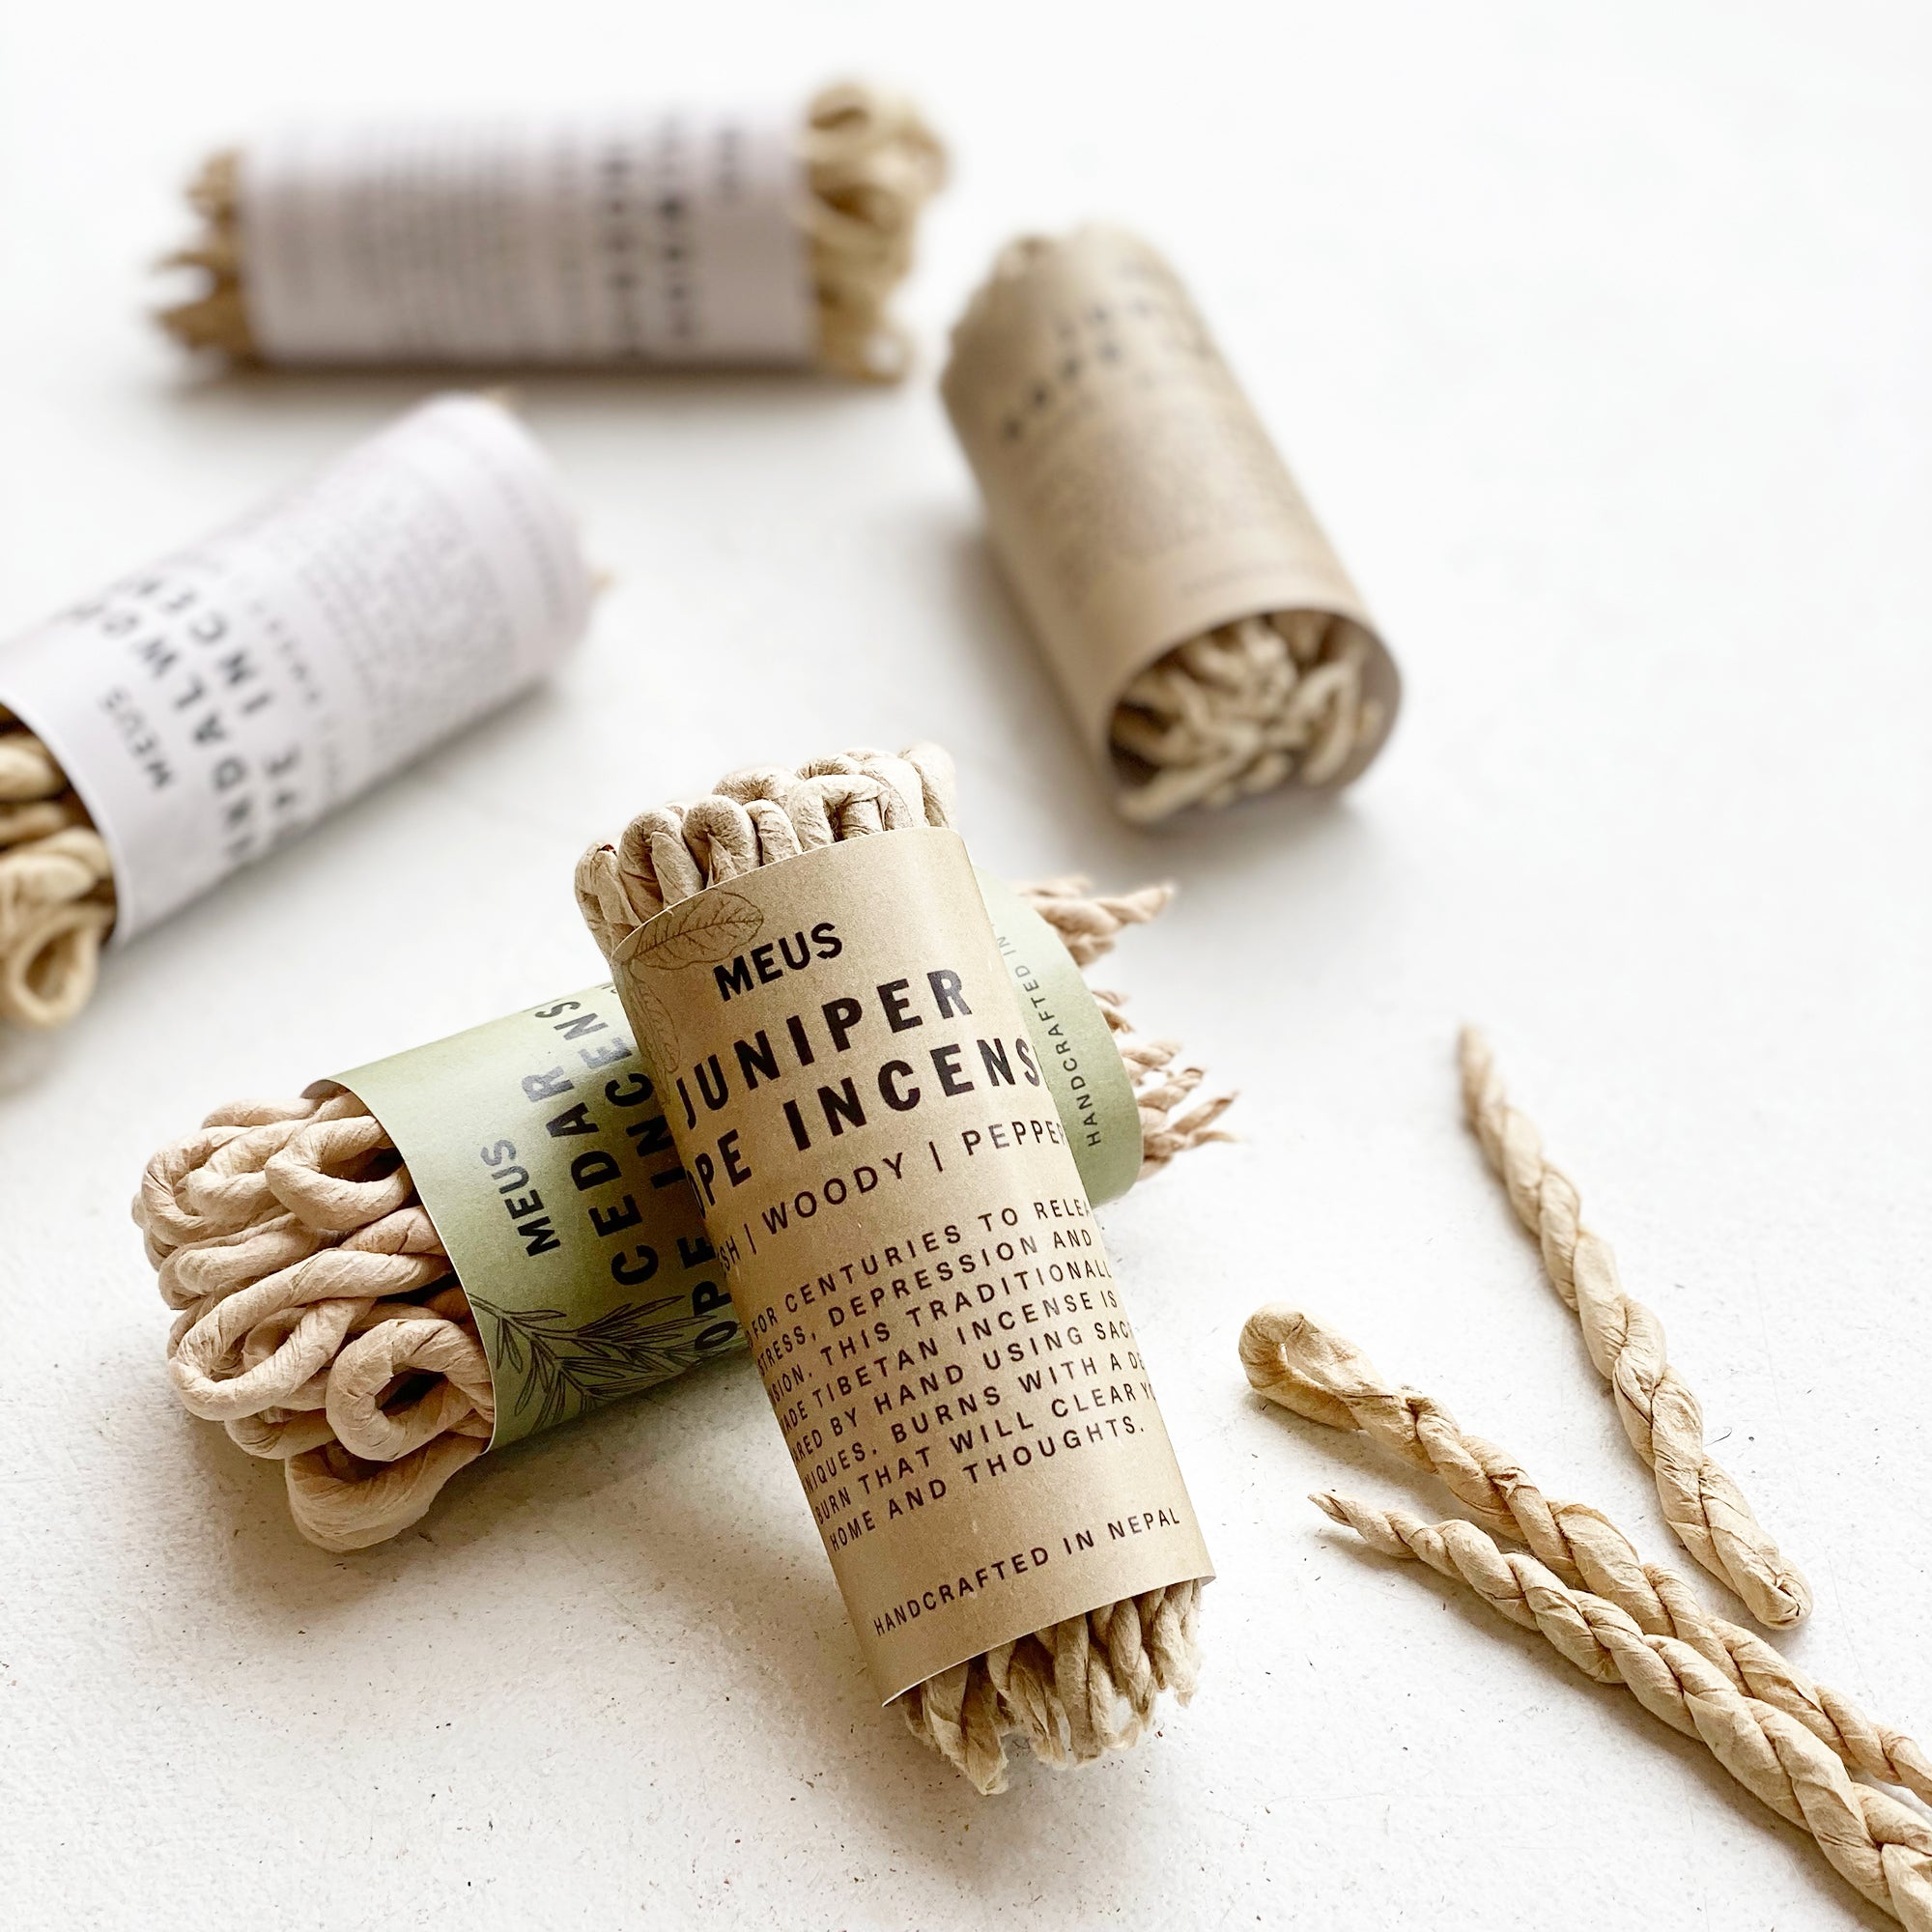 Juniper Rope Incense